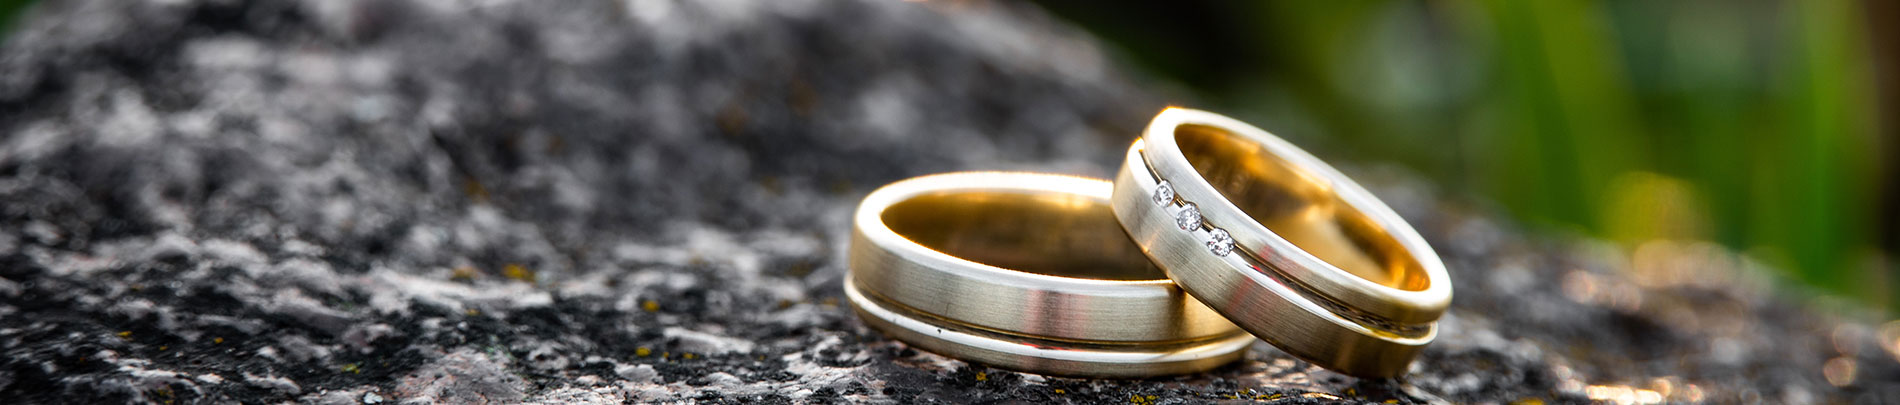 Wedding rings sit on a rock with green foliage in the background.